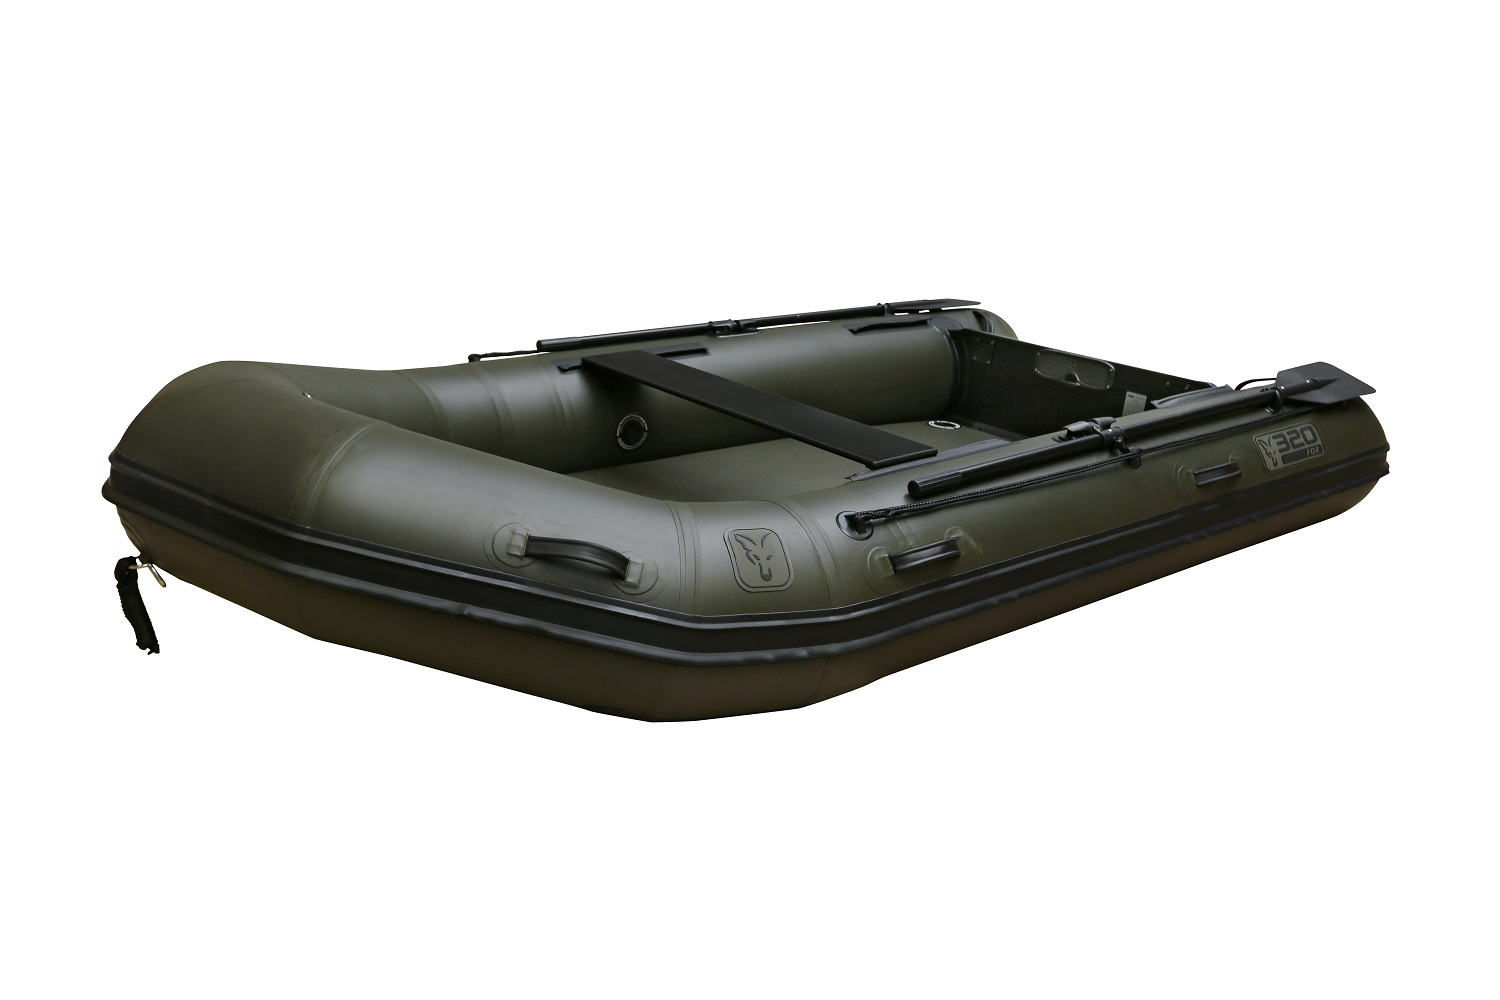 Fox320 Green Boat with Aluminium Floor